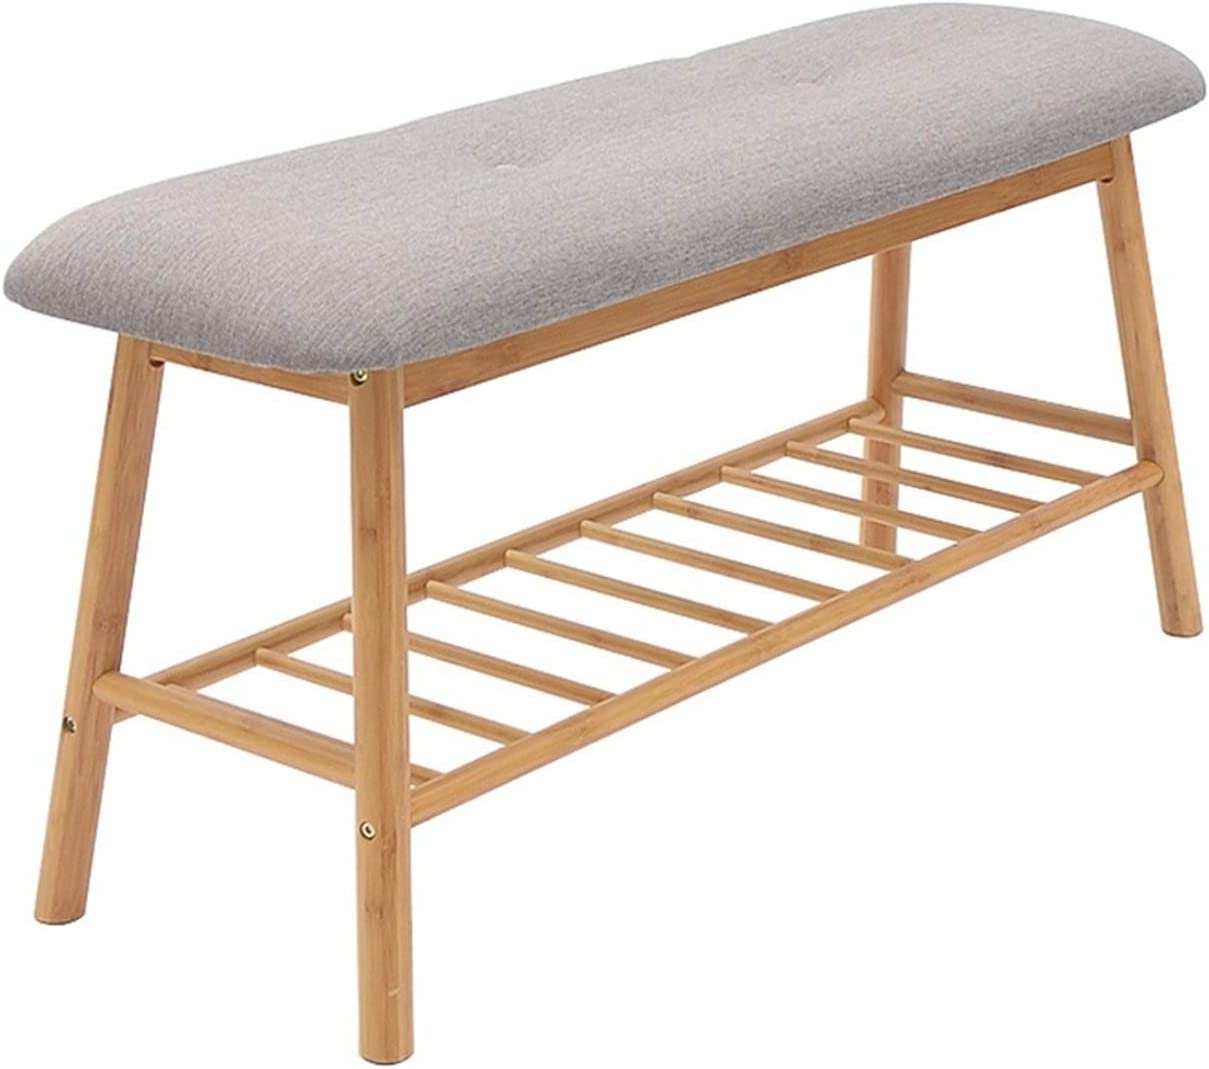 Shoe Racks Bamboo Rack Now on sale Bench Industry No. 1 Sho Storage Organizer Assembly